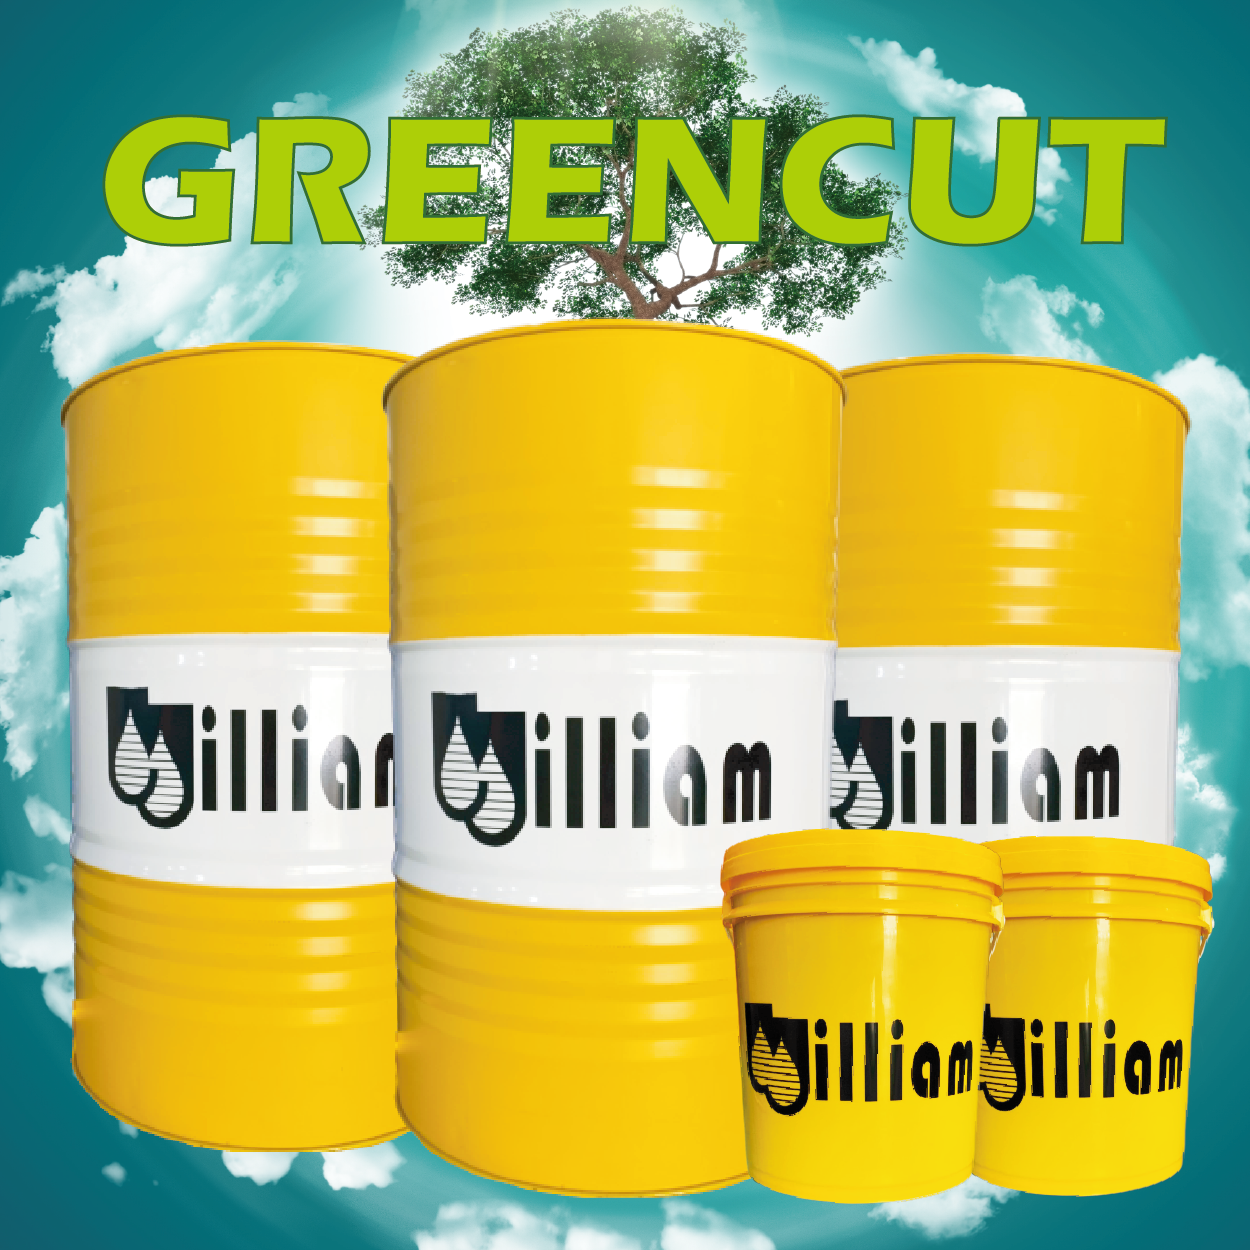 William Greencut Lubricant